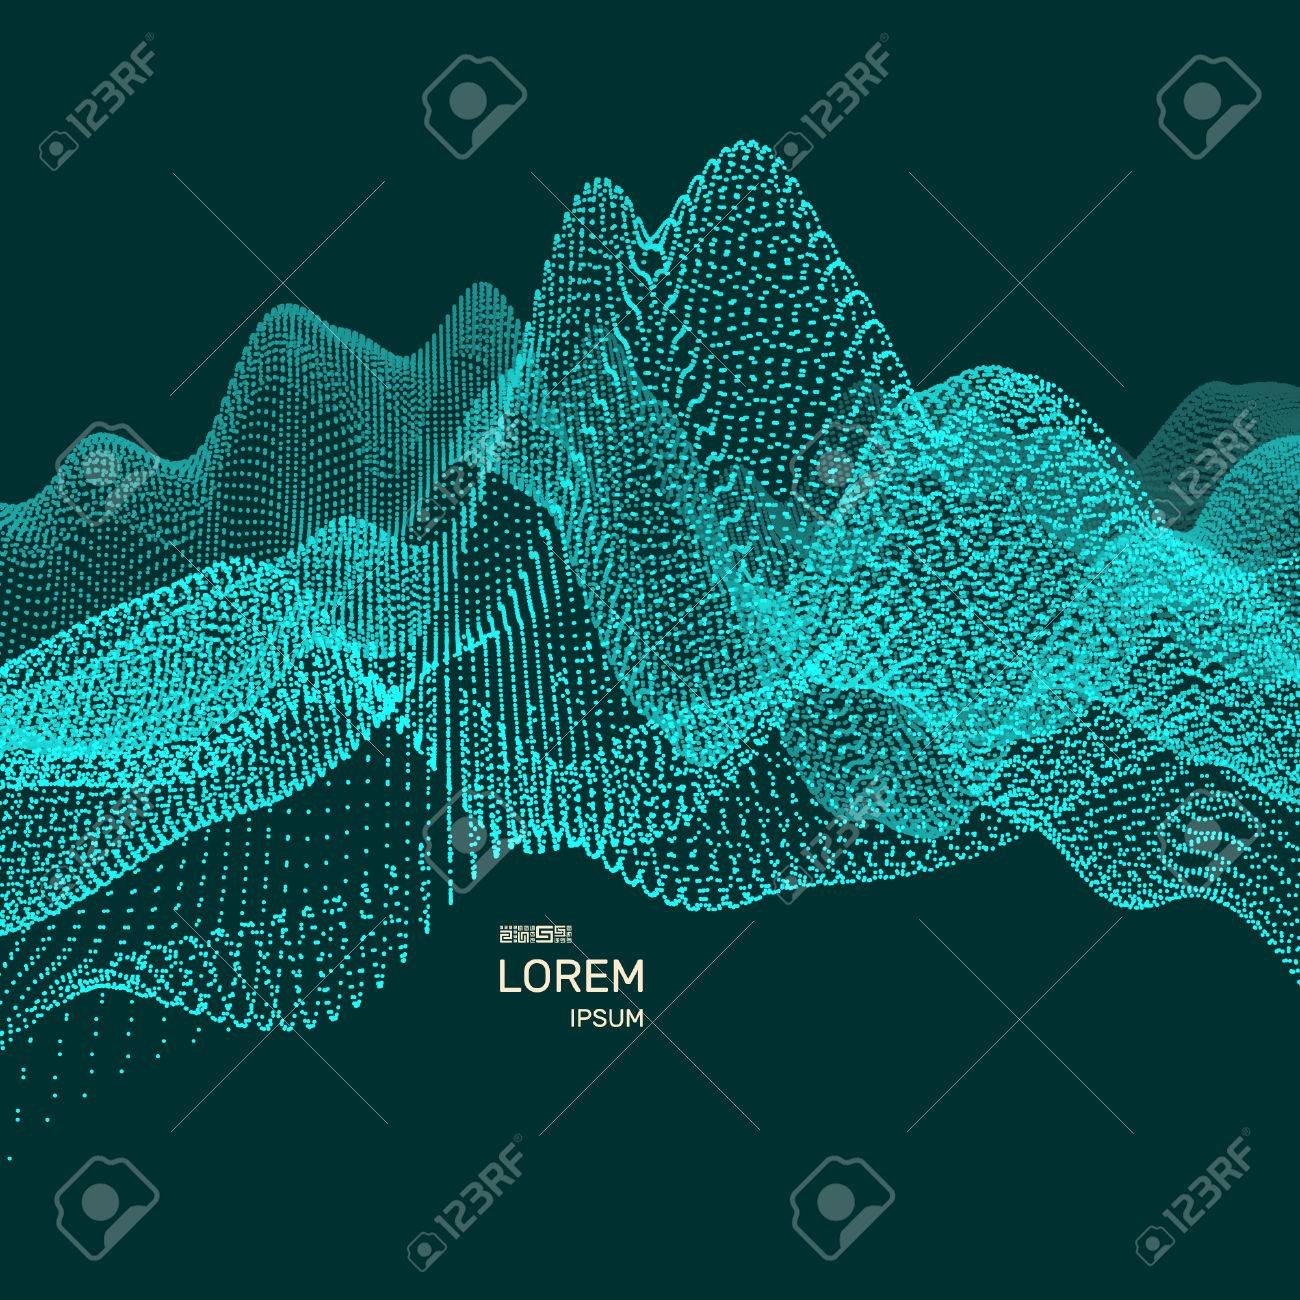 wavy background for banner flyer book cover poster big data